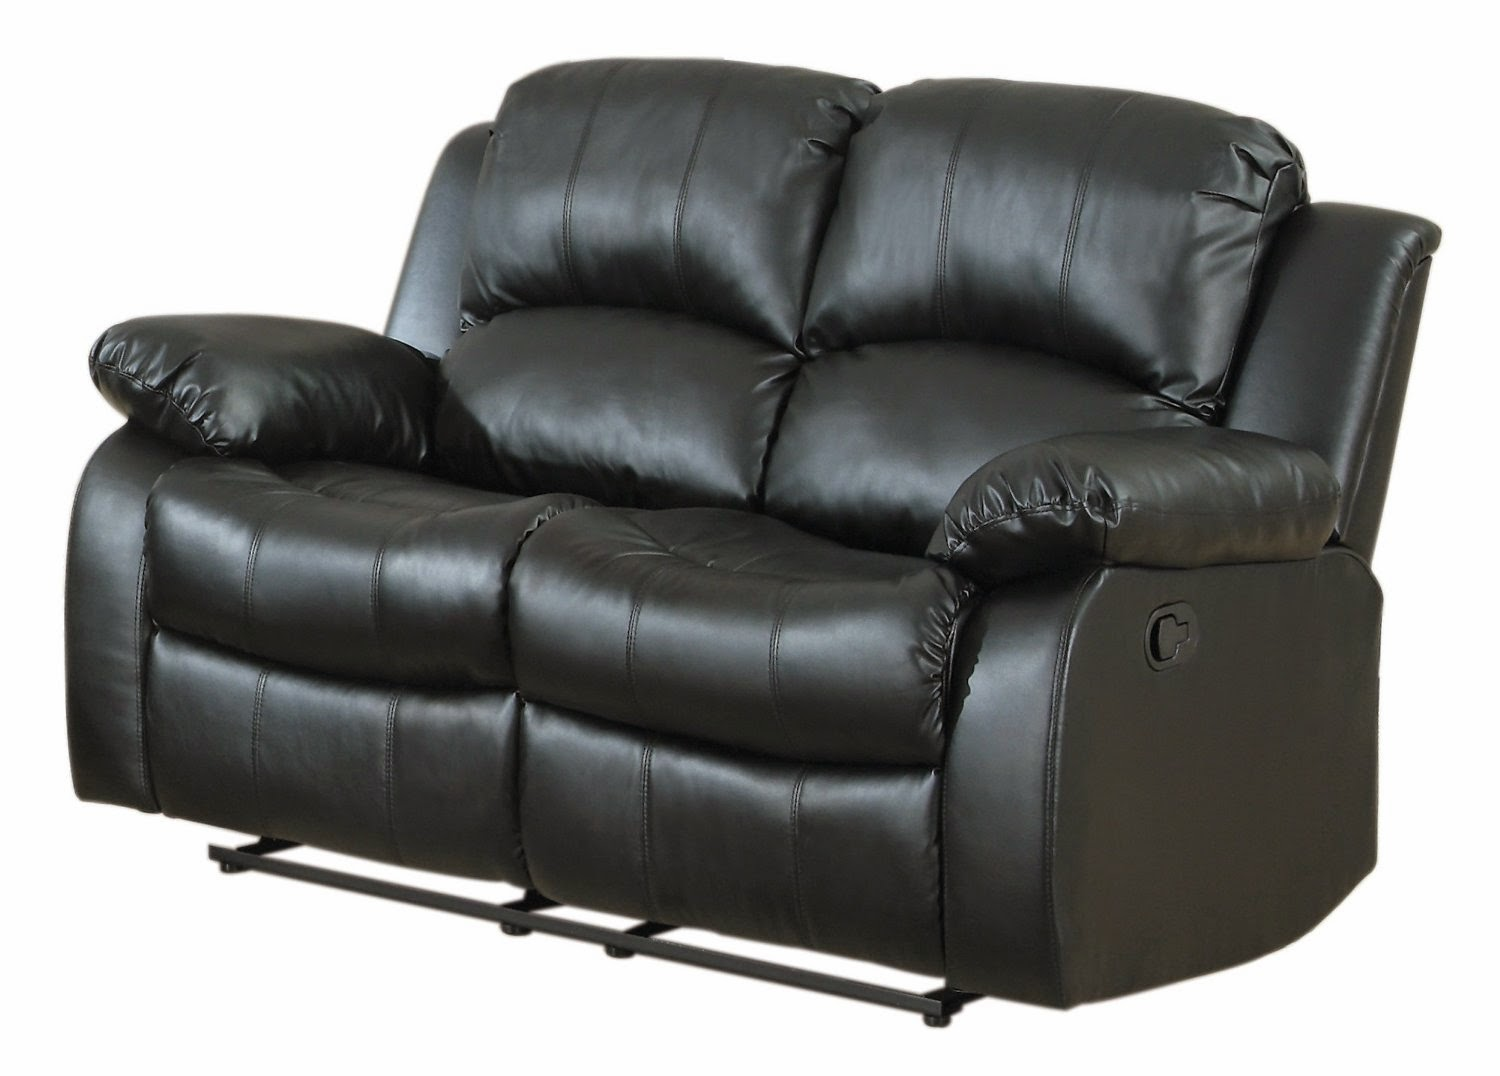 Cheap recliner sofas for sale black leather reclining for Leather sofas for sale